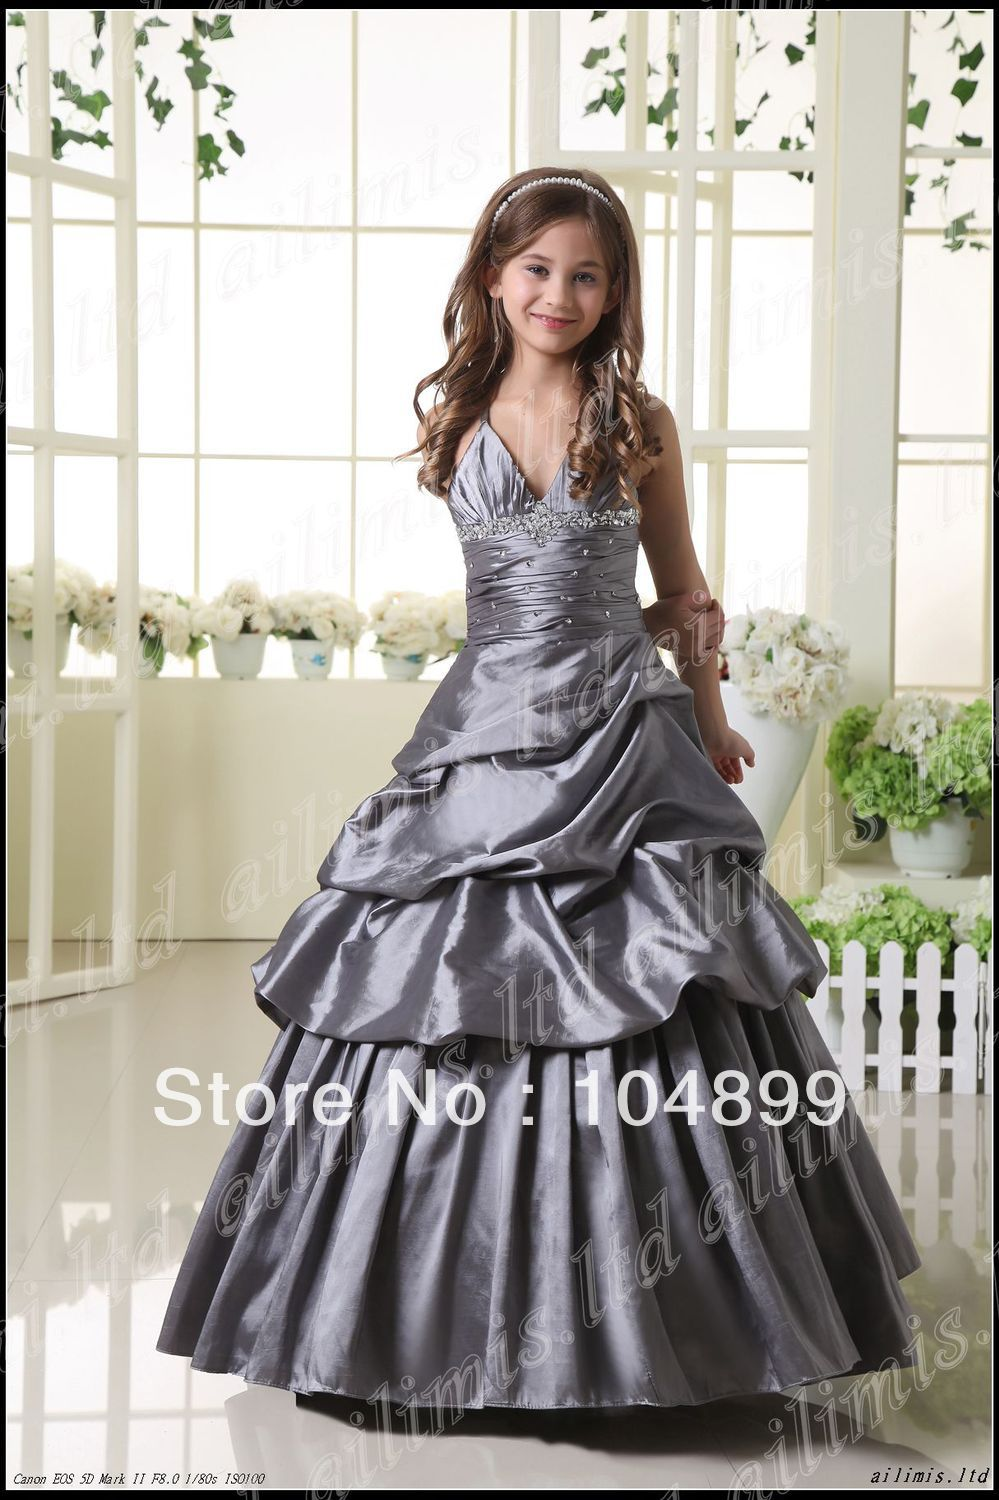 Collection Girls Dresses Size 14 16 Pictures - Reikian